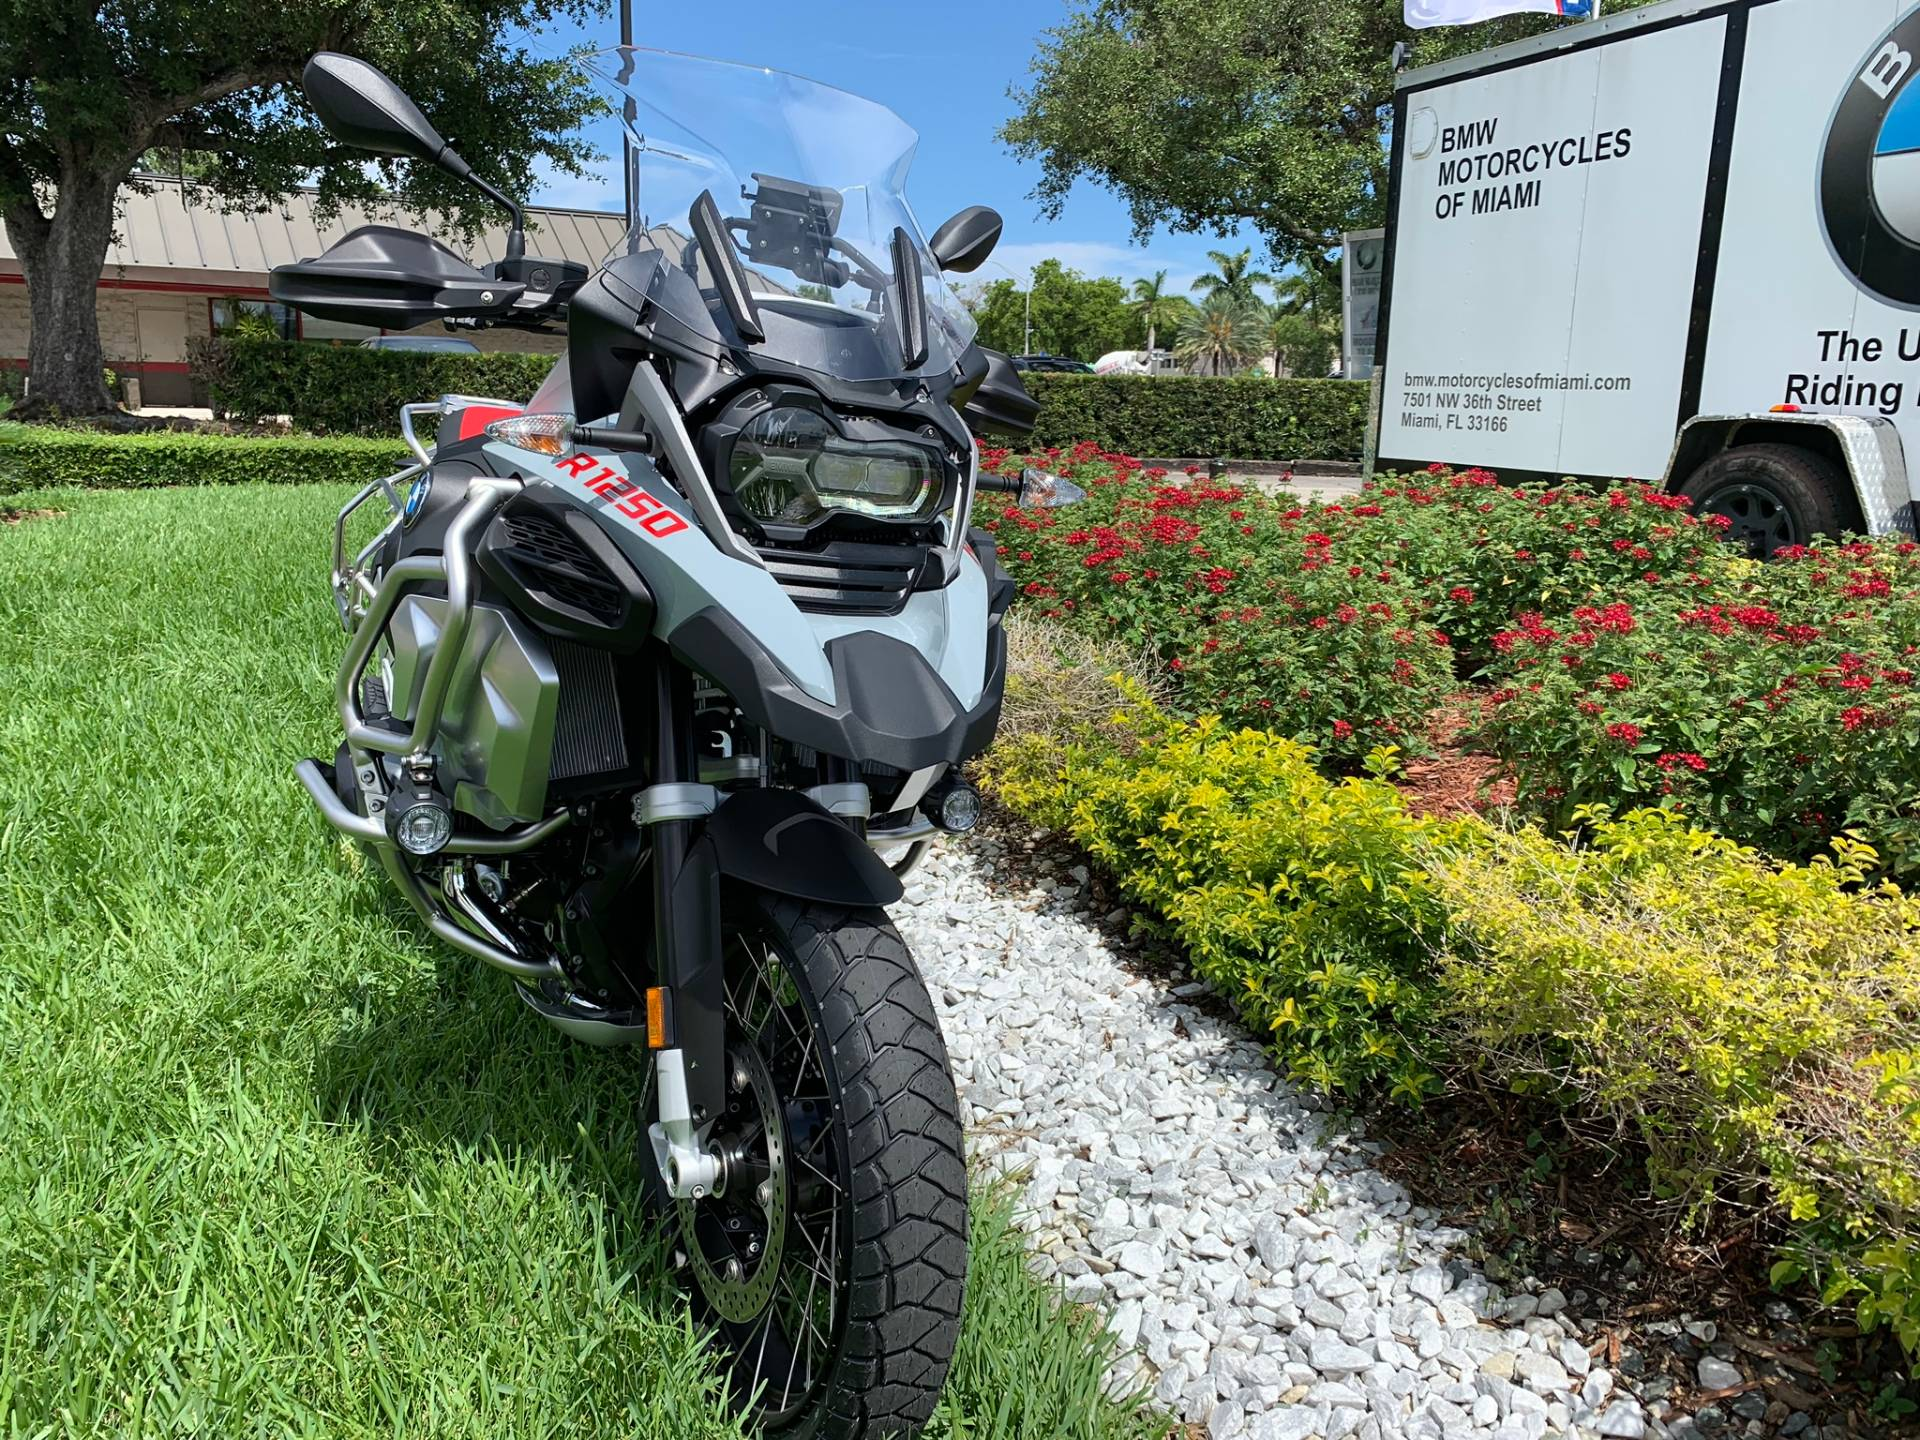 New 2019 BMW R 1250 GSA for sale, New BMW for sale R 1250GSA, New BMW Motorcycle R1250GSA for sale, new BMW 1250GS Adventure, R1250GS Adventure, Adventure. BMW Motorcycles of Miami, Motorcycles of Miami, Motorcycles Miami, New Motorcycles, Used Motorcycles, pre-owned. #BMWMotorcyclesOfMiami #Motorcy - Photo 32